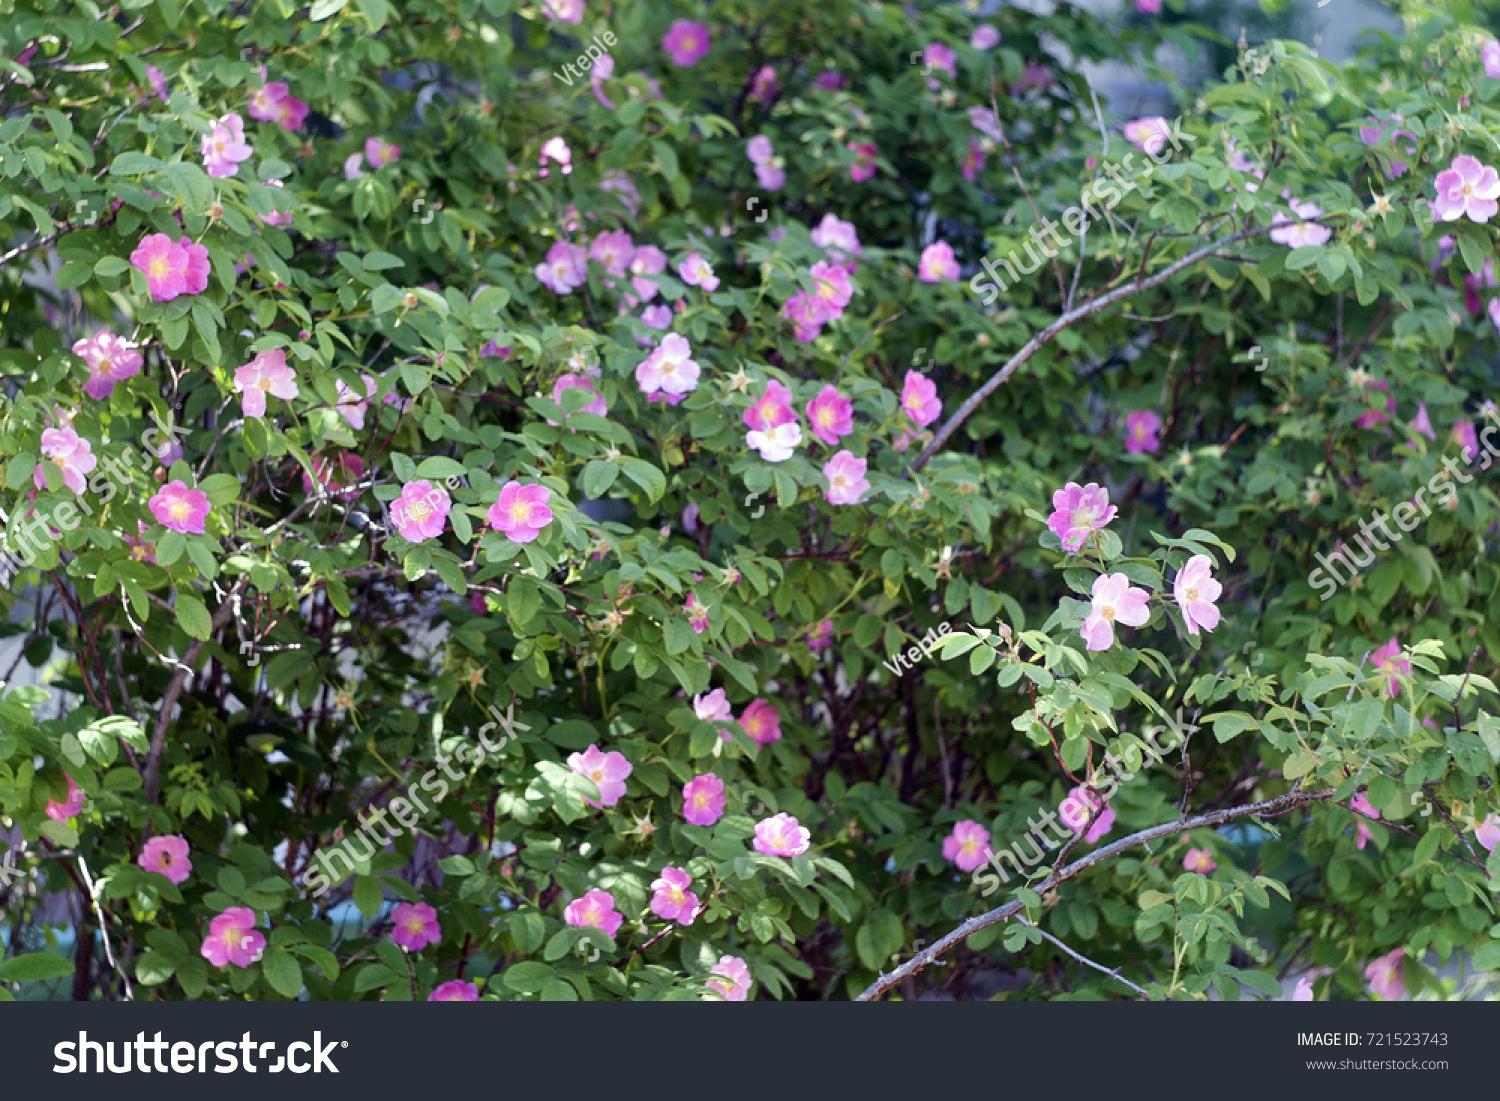 Bushes Of Rose Hips With Pink Flowers In The Sunlight Summer